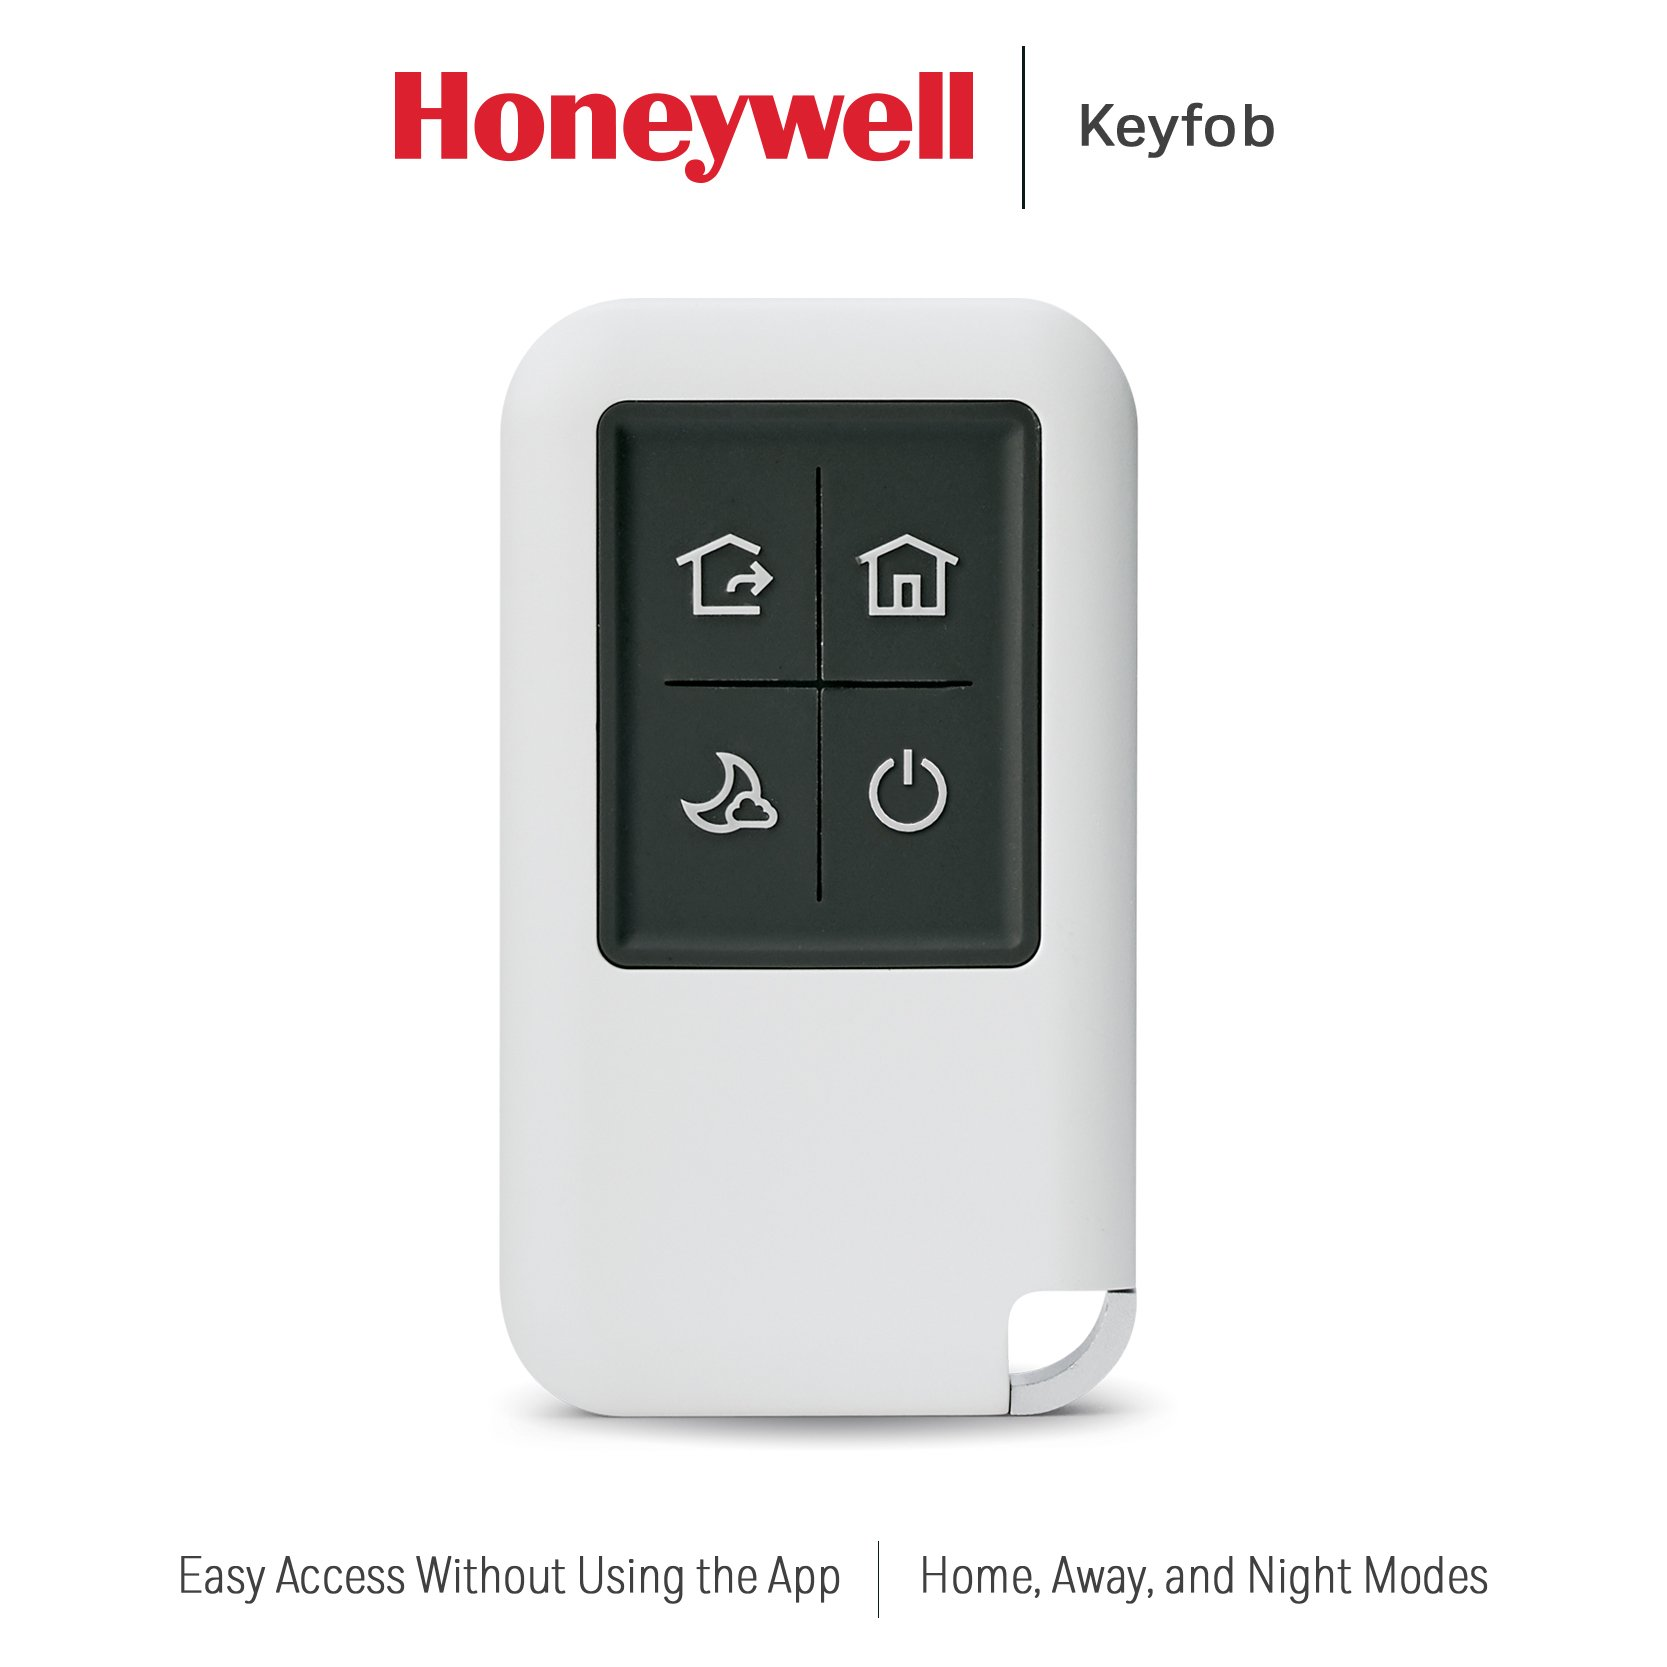 Honeywell RCHSKF1 Smart Home Security System Keyfob, White